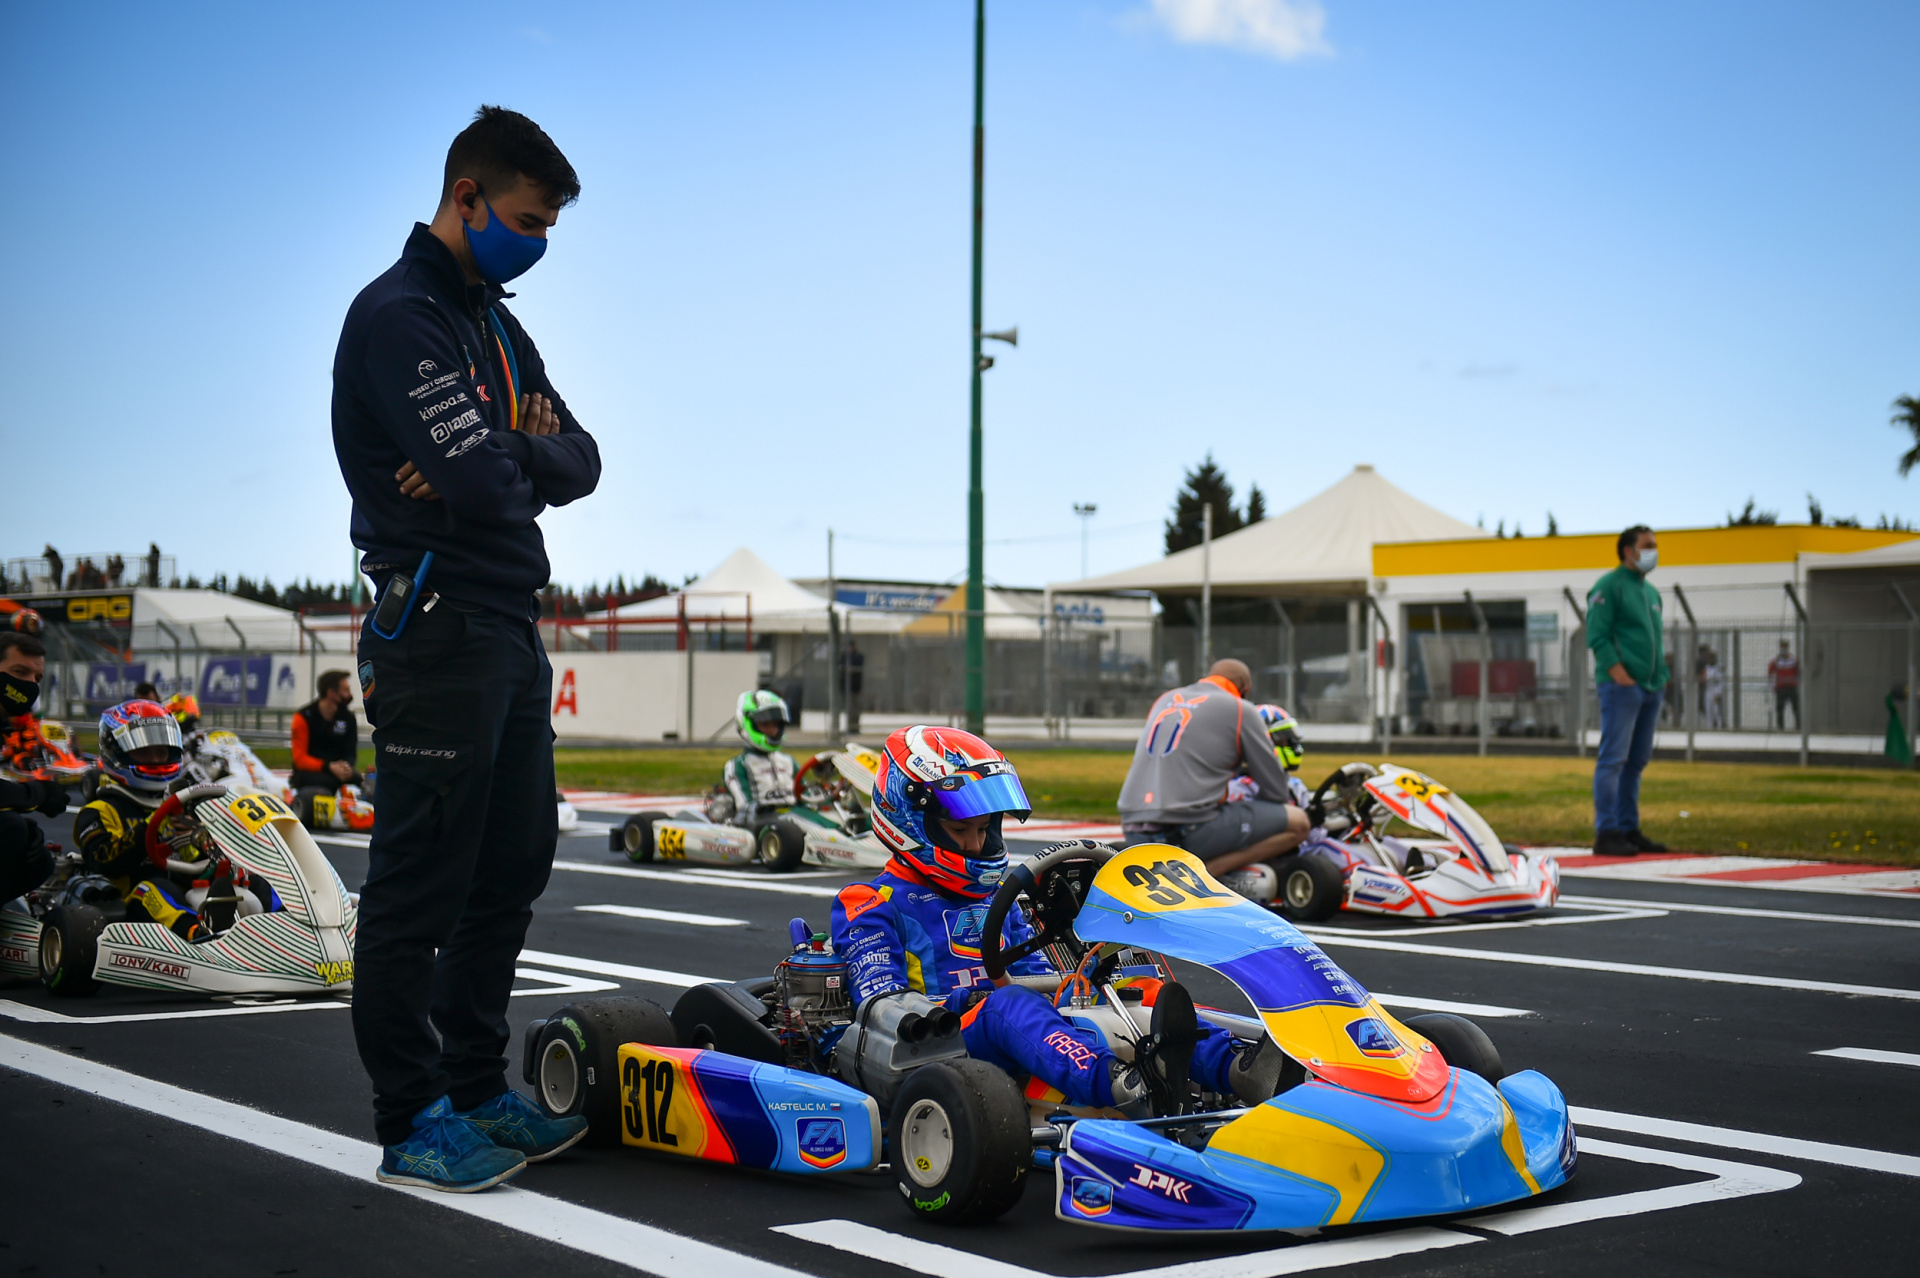 Mark Kastelic will be at Sarno circuit this weekend for another WSK race